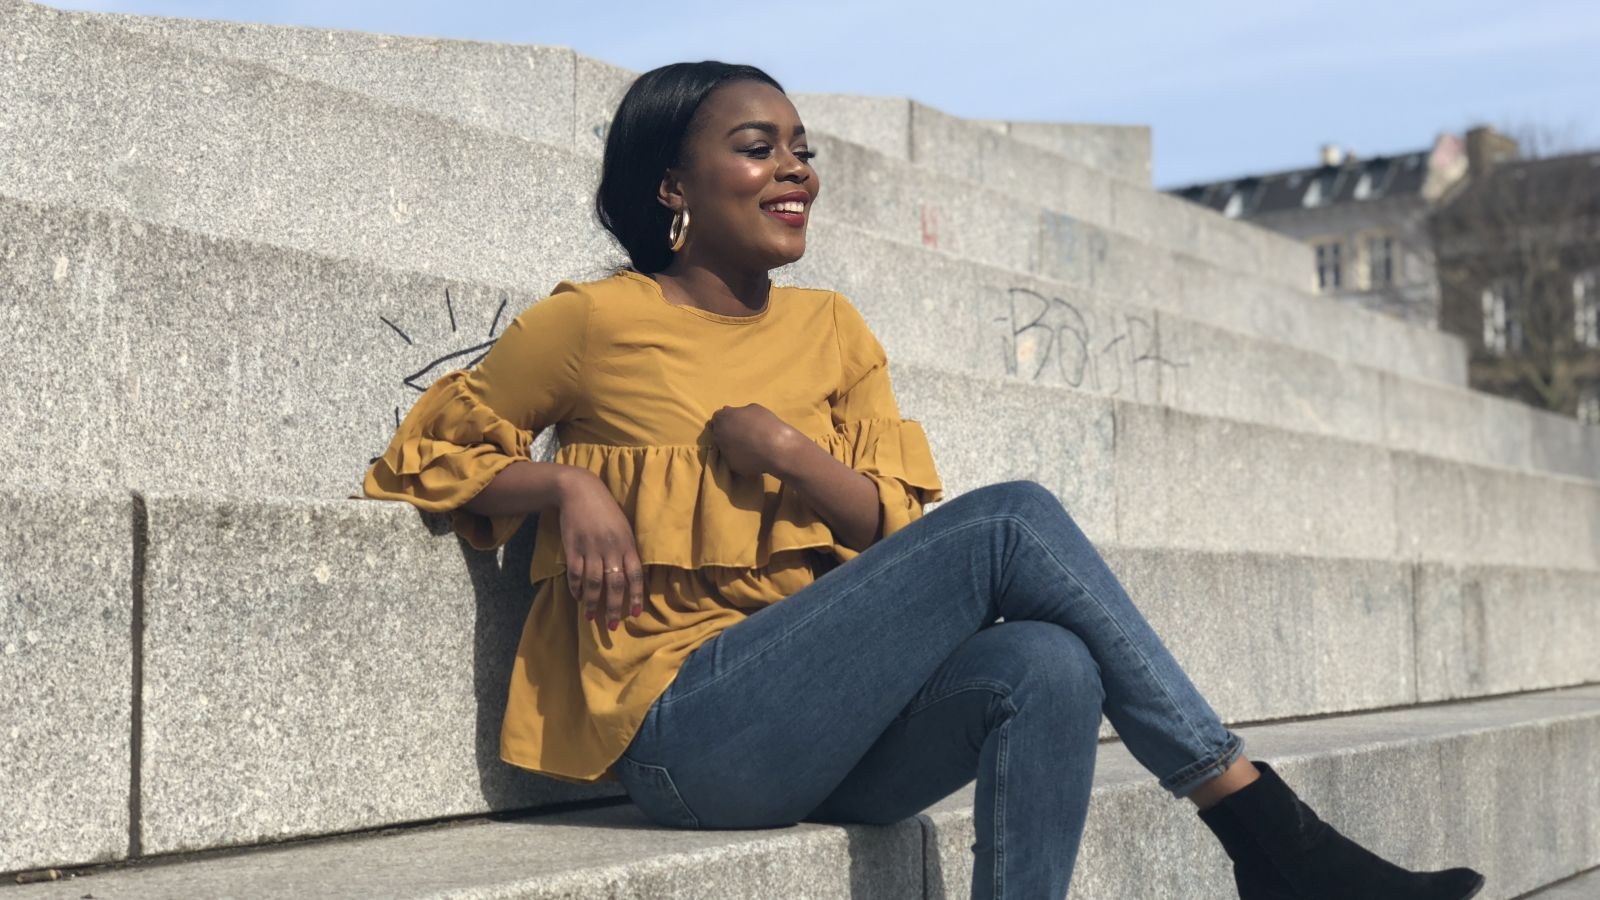 Merveille Musungay, CBS student, writes about how to keep motivated in university.